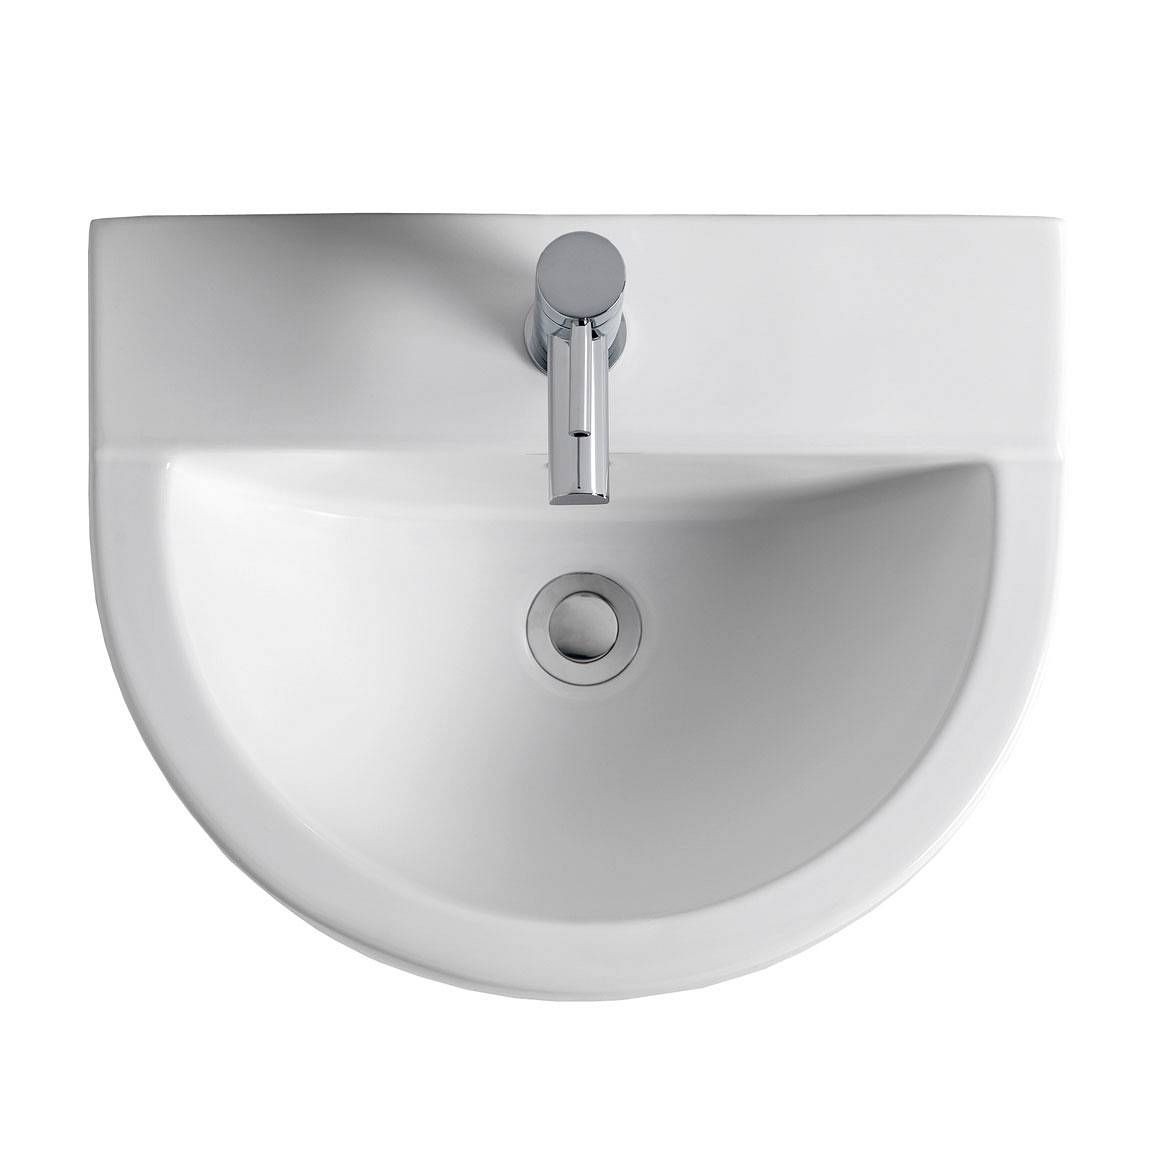 The Bath Co Camberley 2 Tap Hole Full Pedestal Basin 610mm